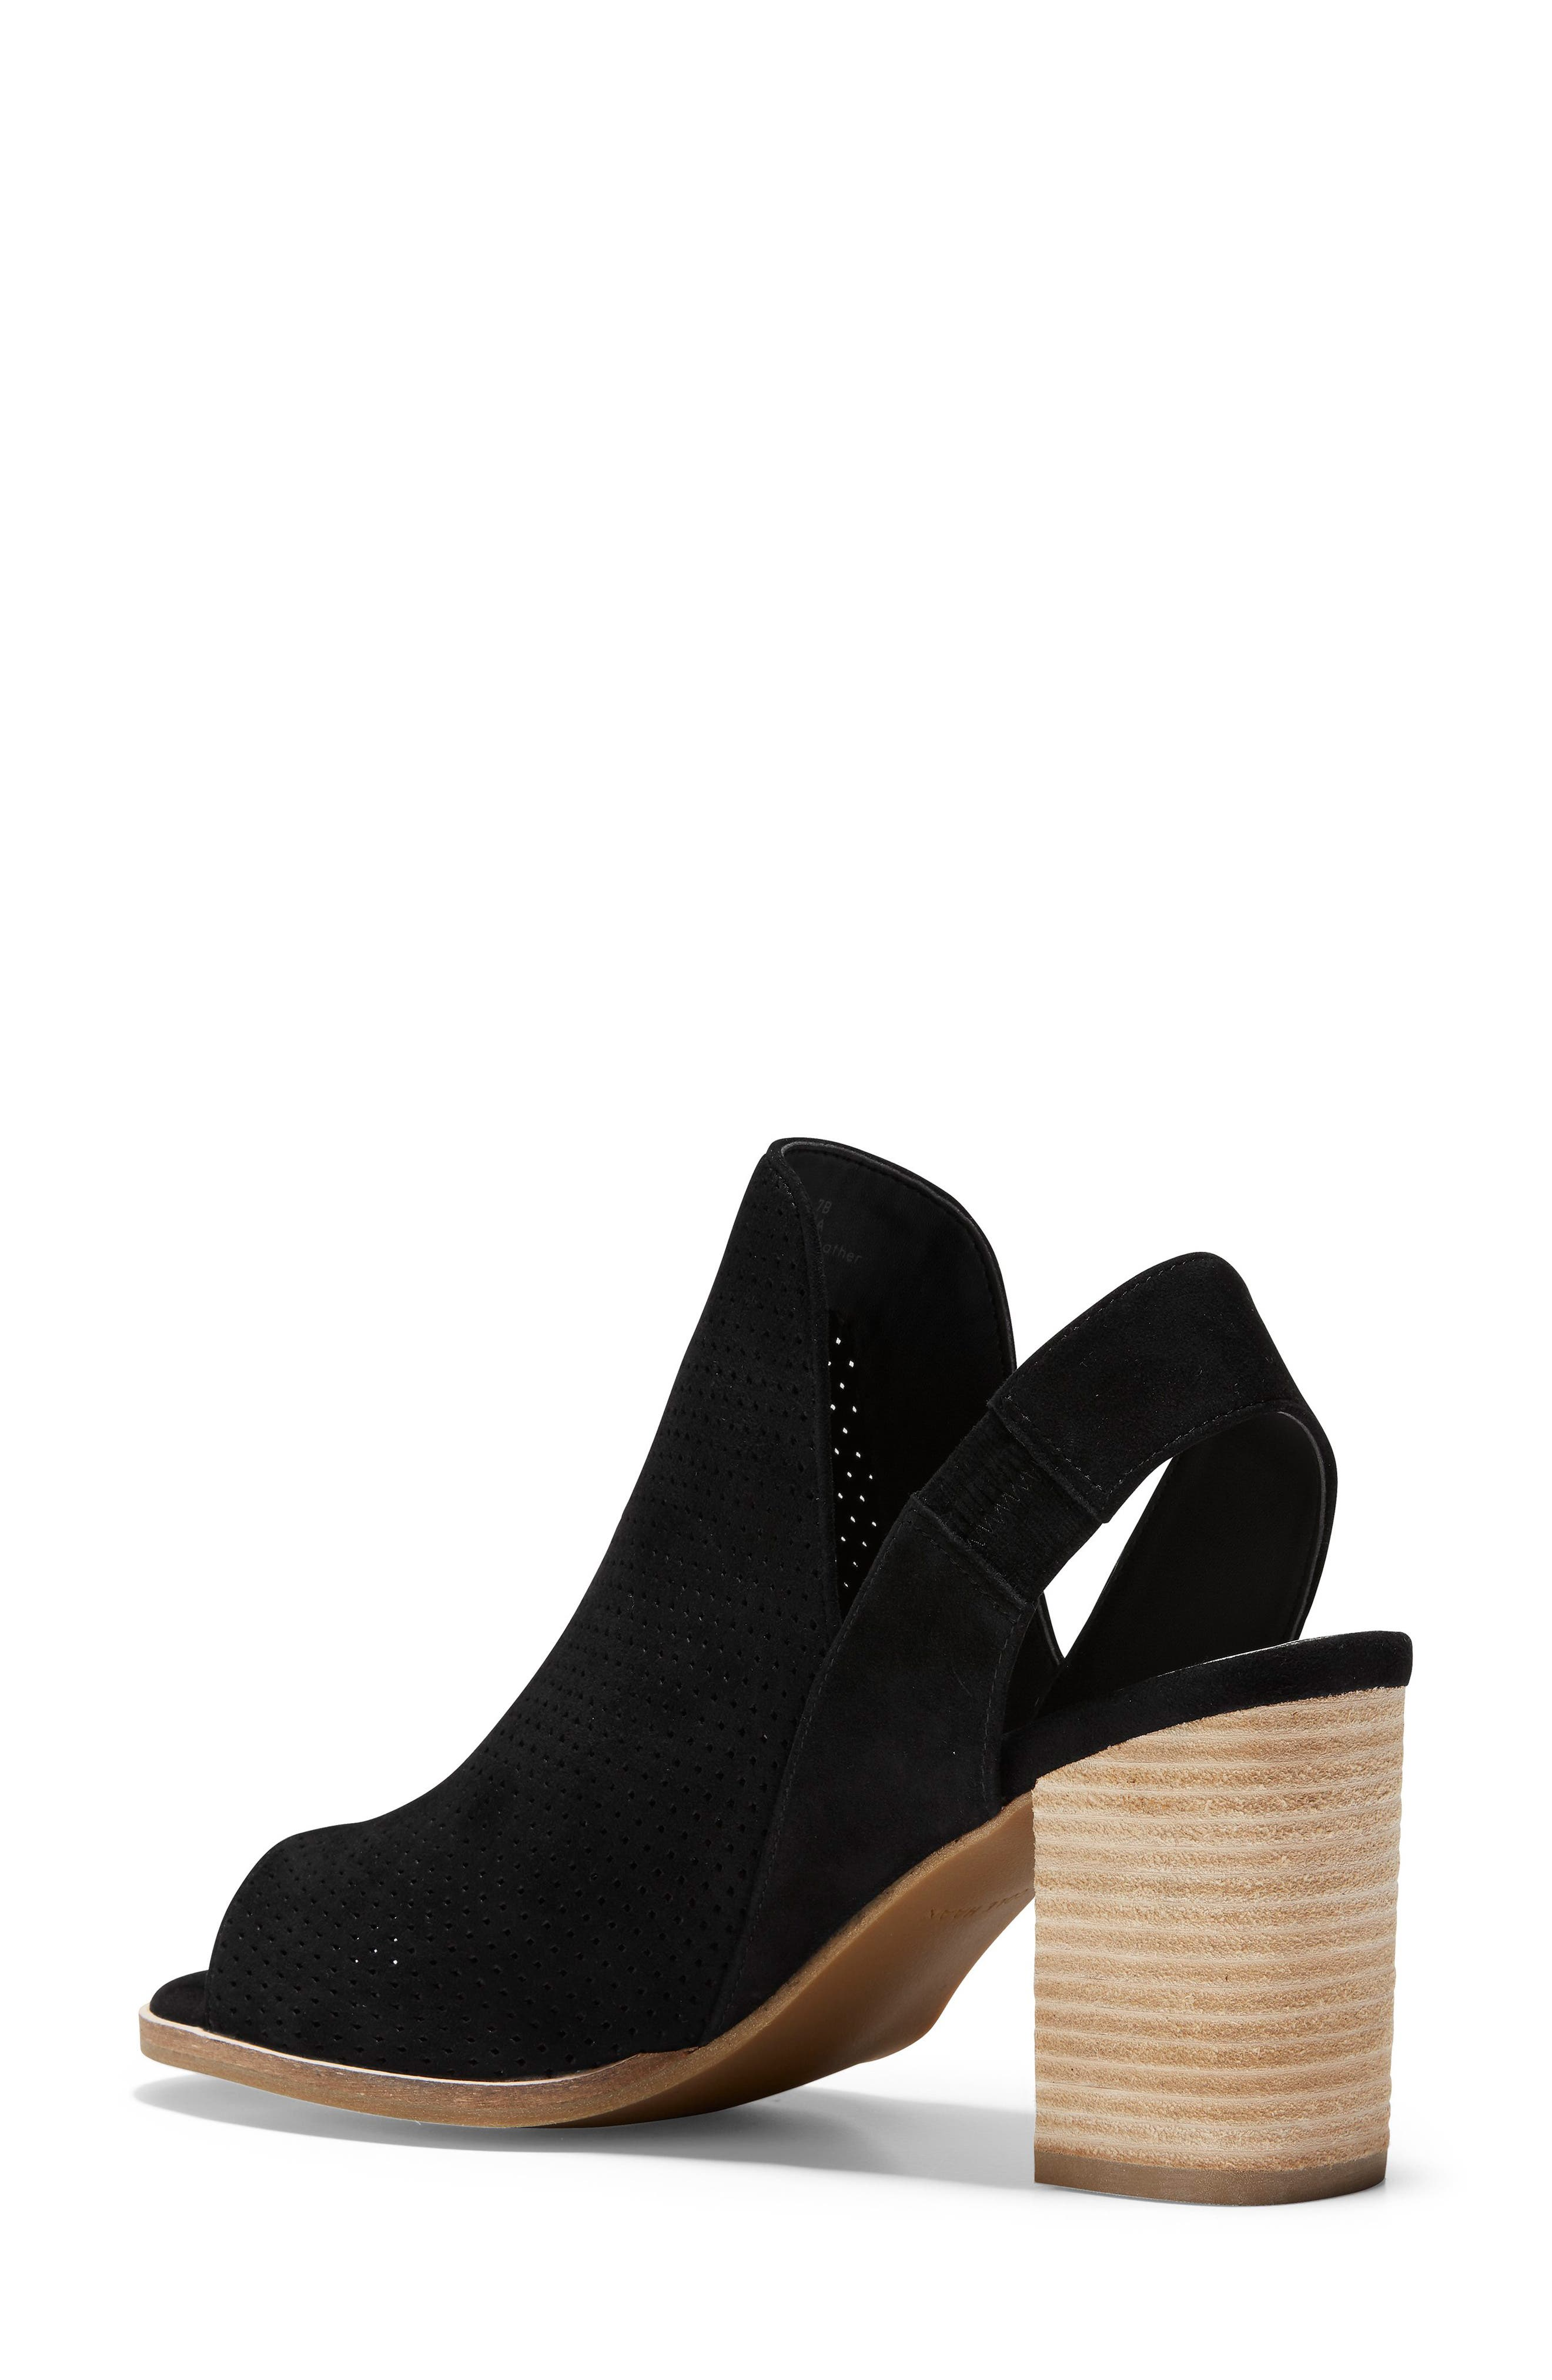 COLE HAAN, Callista Perforated Slingback Sandal, Alternate thumbnail 2, color, BLACK PERF SUEDE